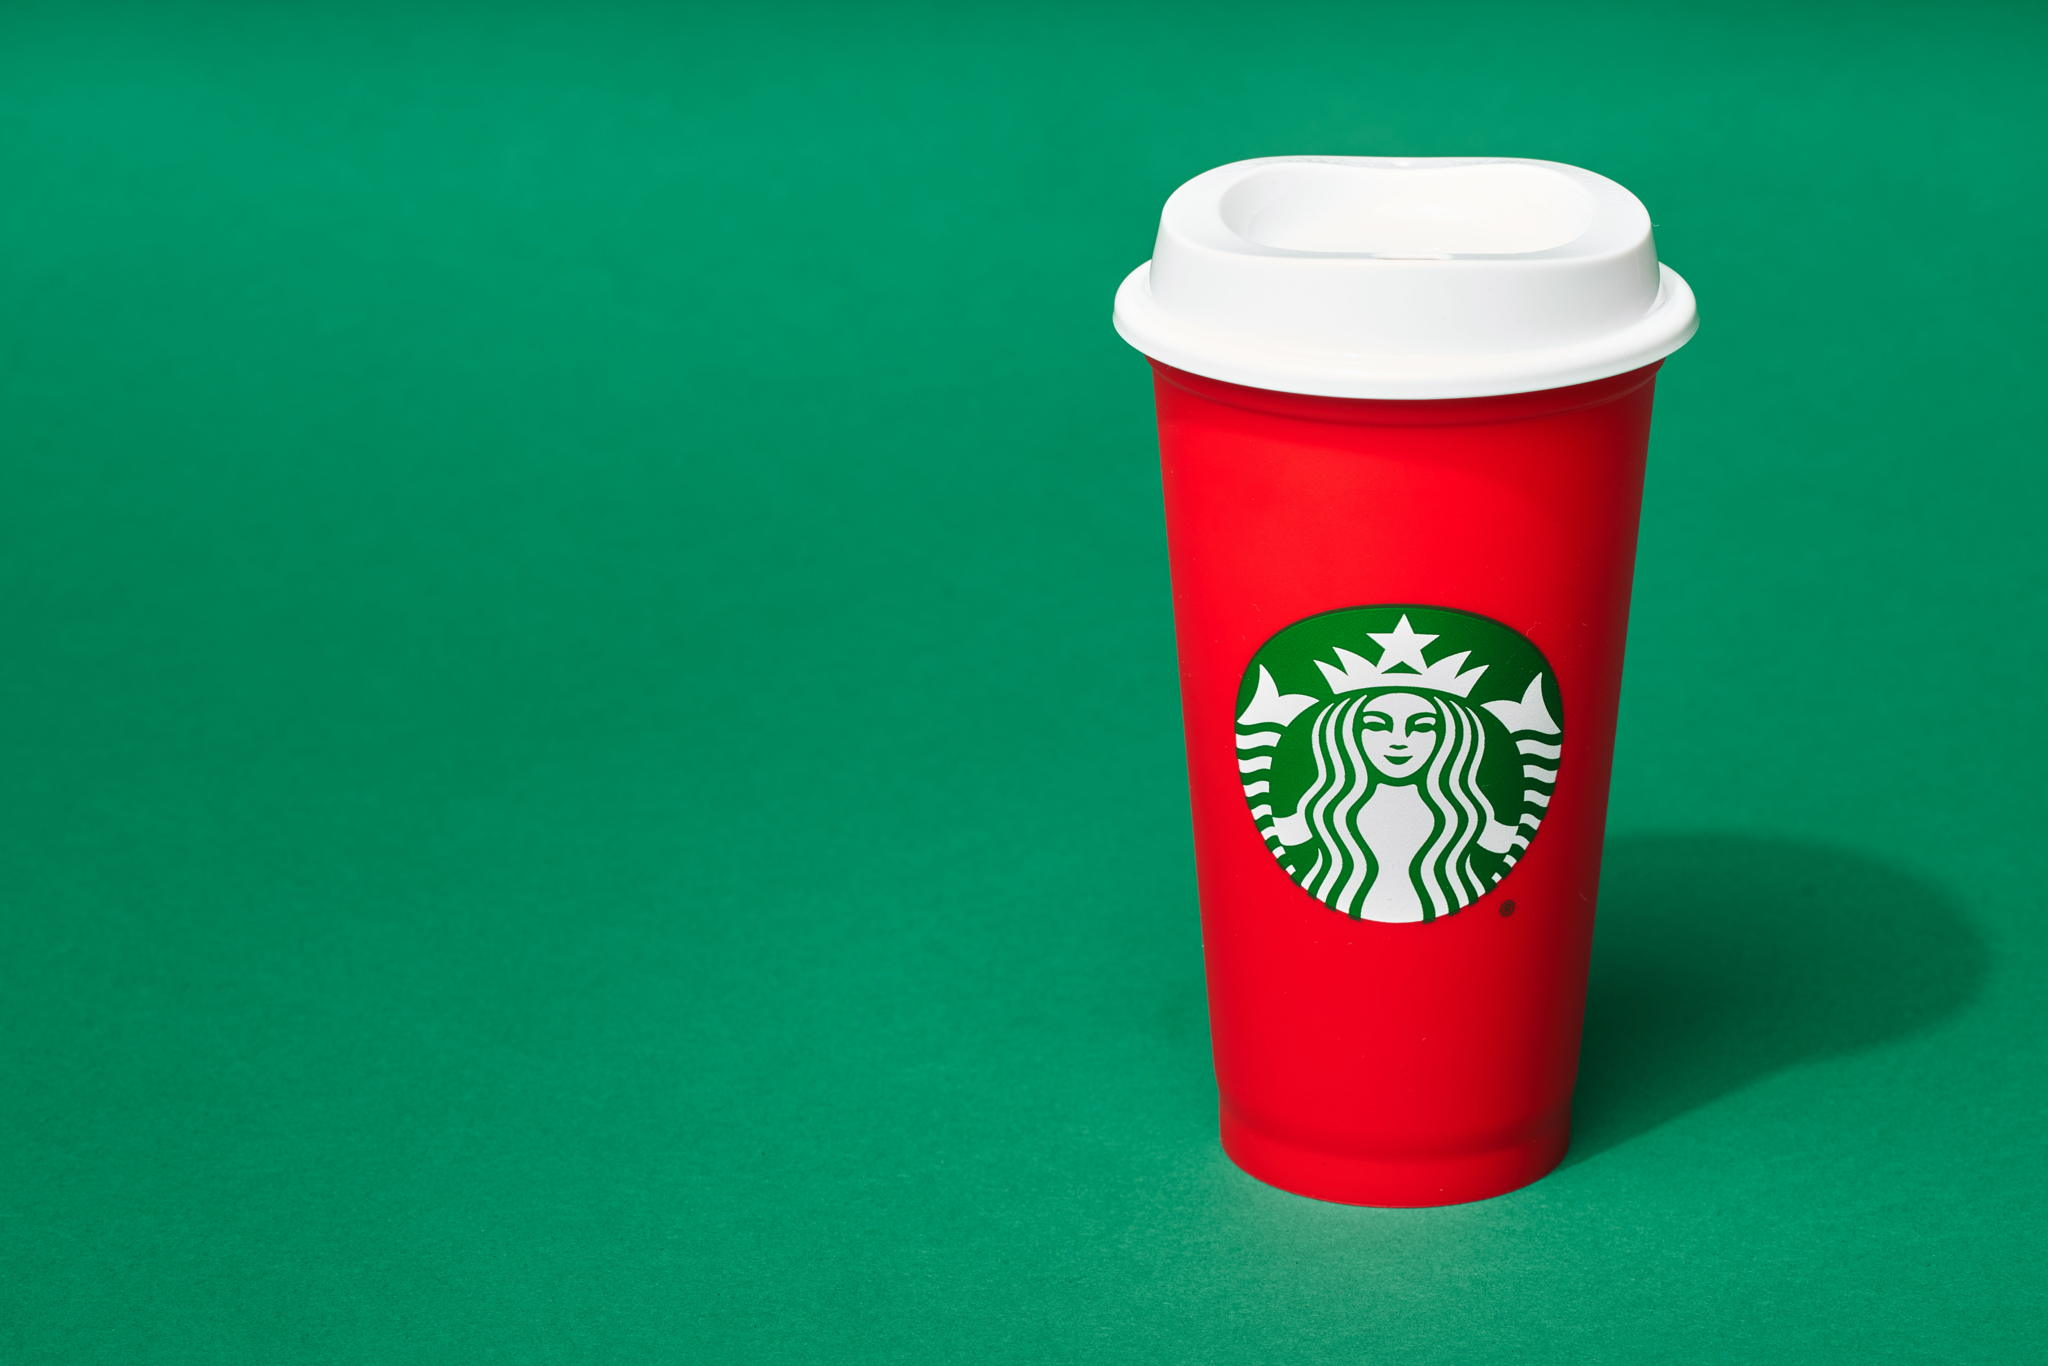 The_Dieline_Starbucks_Holiday-JStrutz-103018-0054_1.jpg